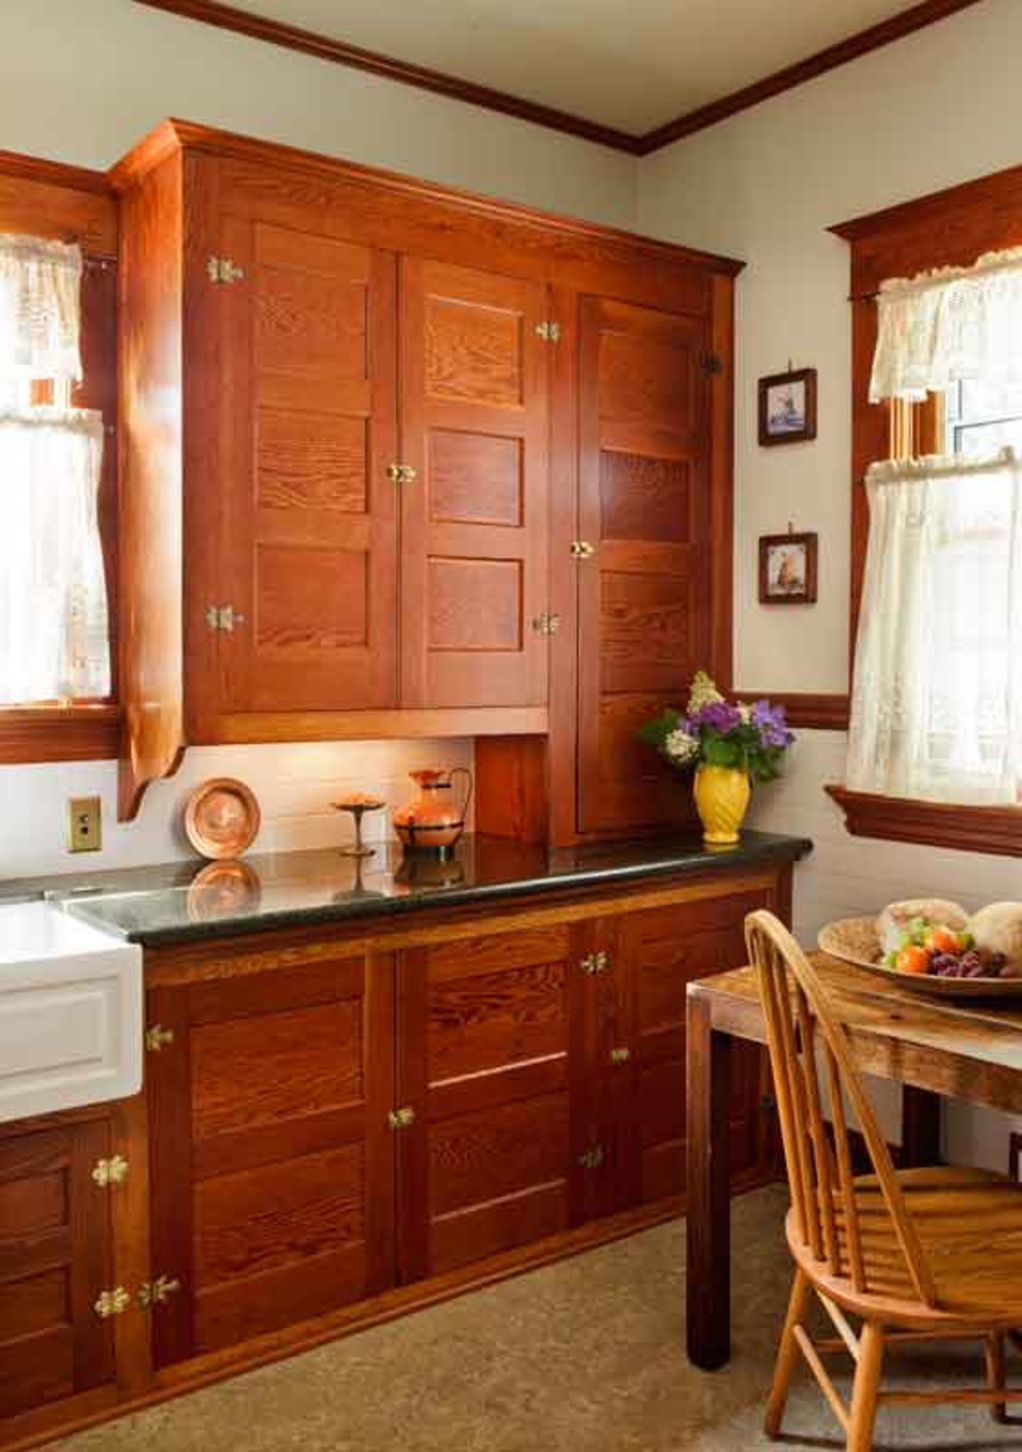 Historic Victorian Kitchen Cabinets An Important Element: Restored Cabinets In A Renovated Craftsman Kitchen